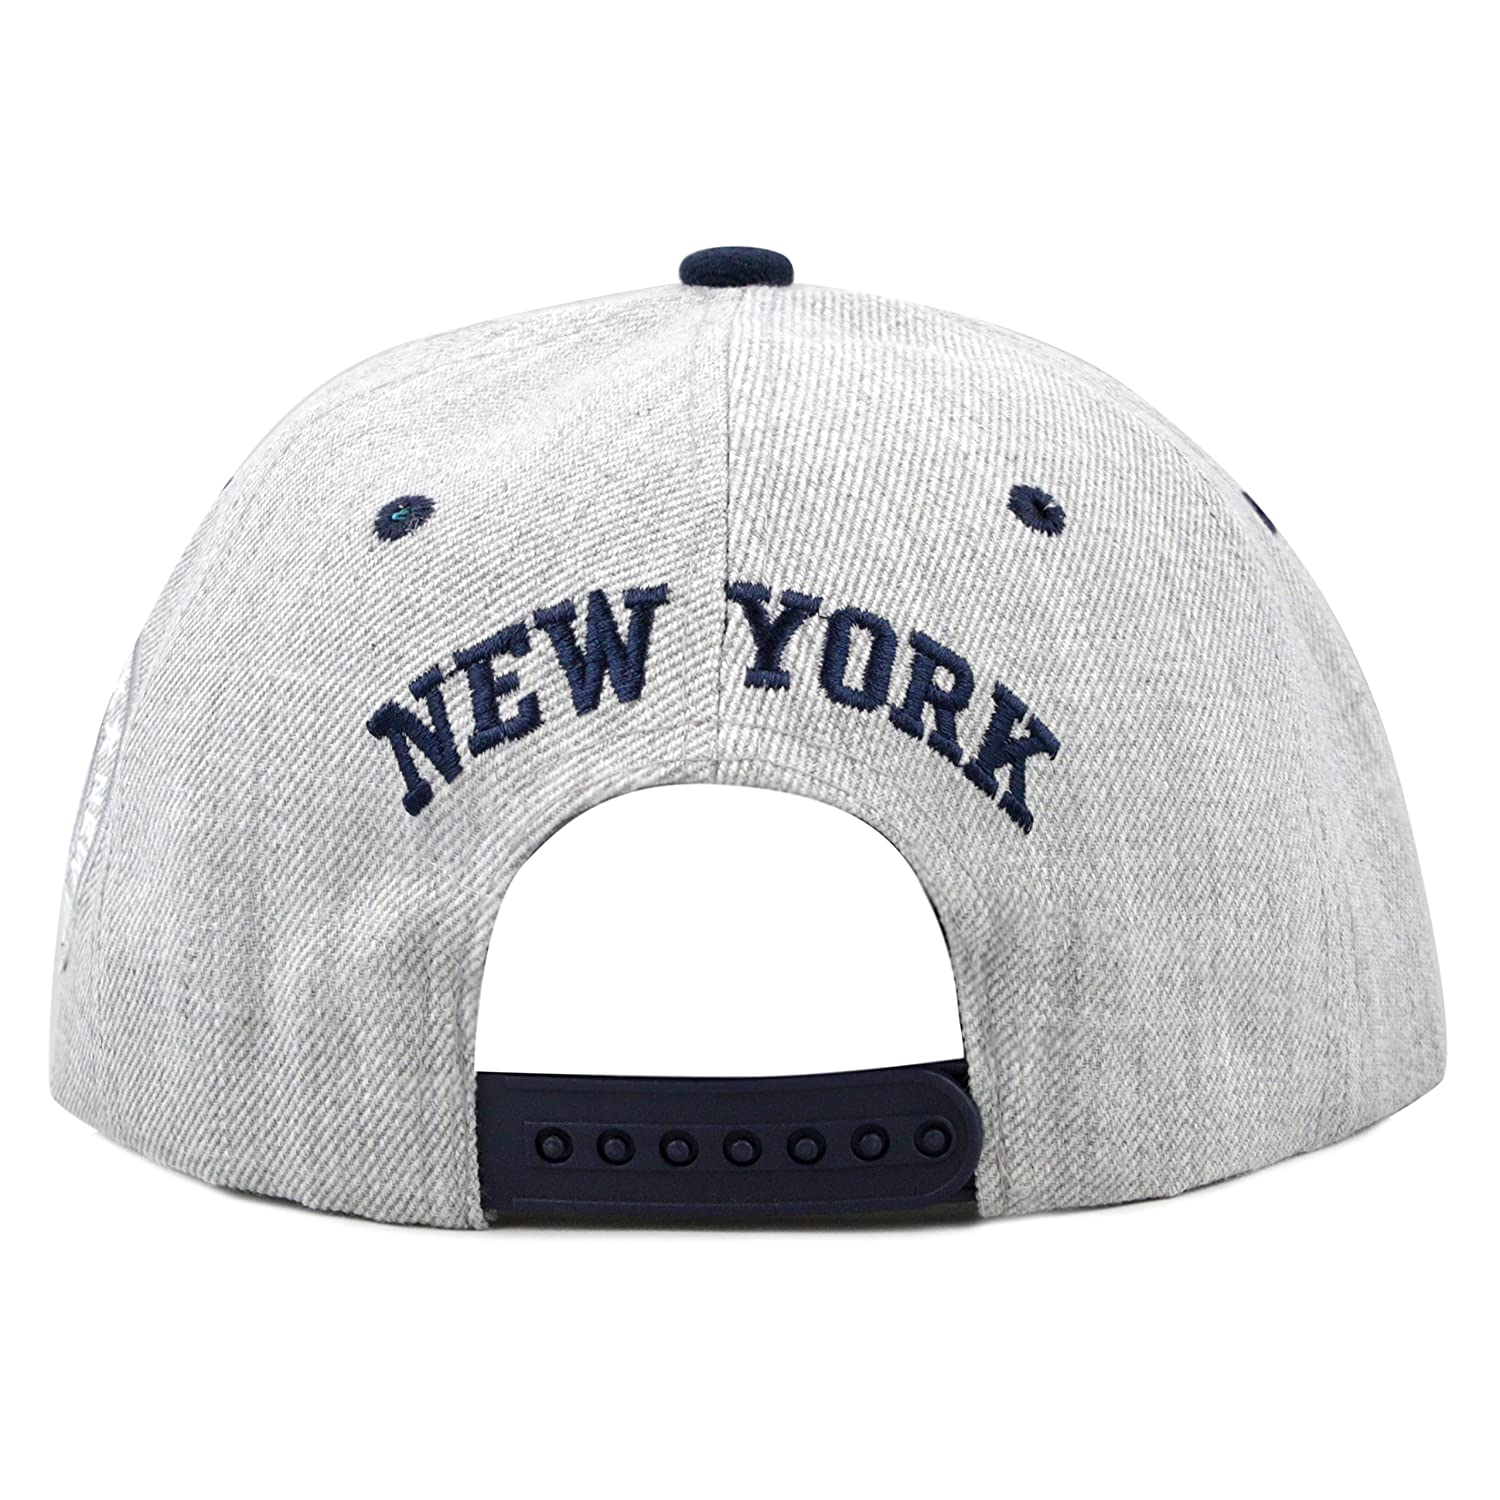 22f583b08c8cc Amazon.com  THE HAT DEPOT 1300DHGny Designed Heather Grey New York Snapback  Cap (Grey)  Clothing